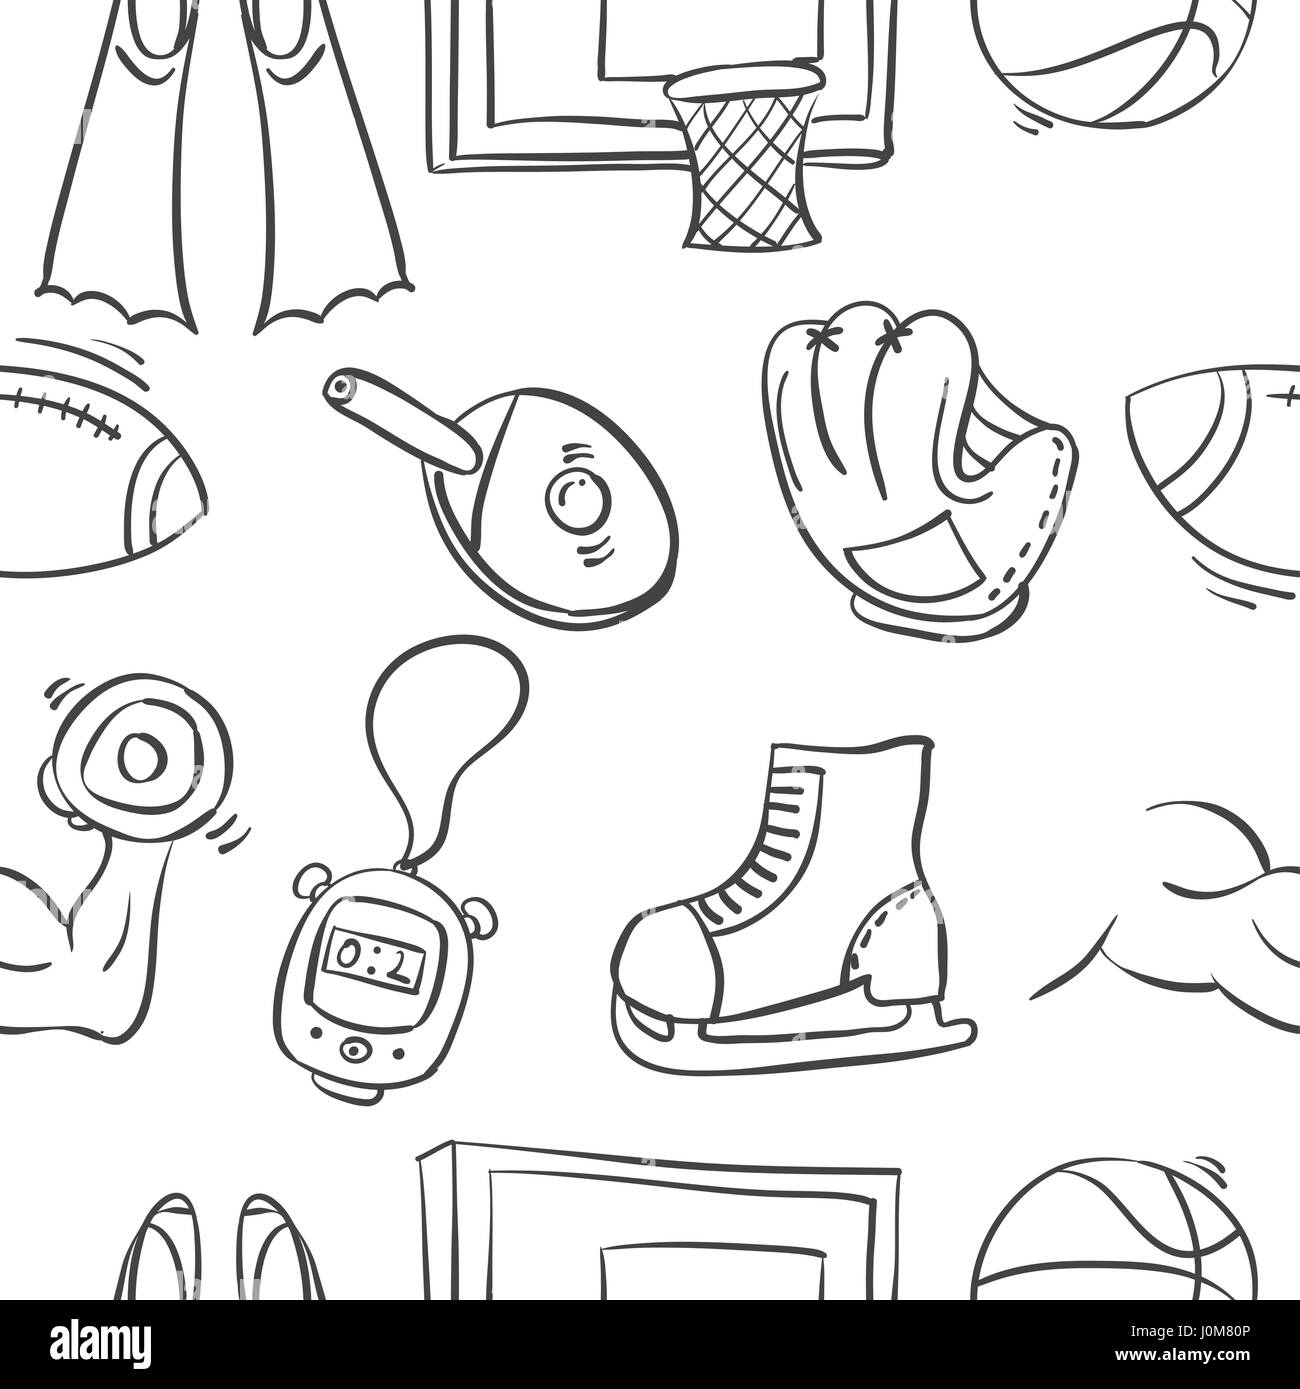 Collection of sport equipment doodle style - Stock Image